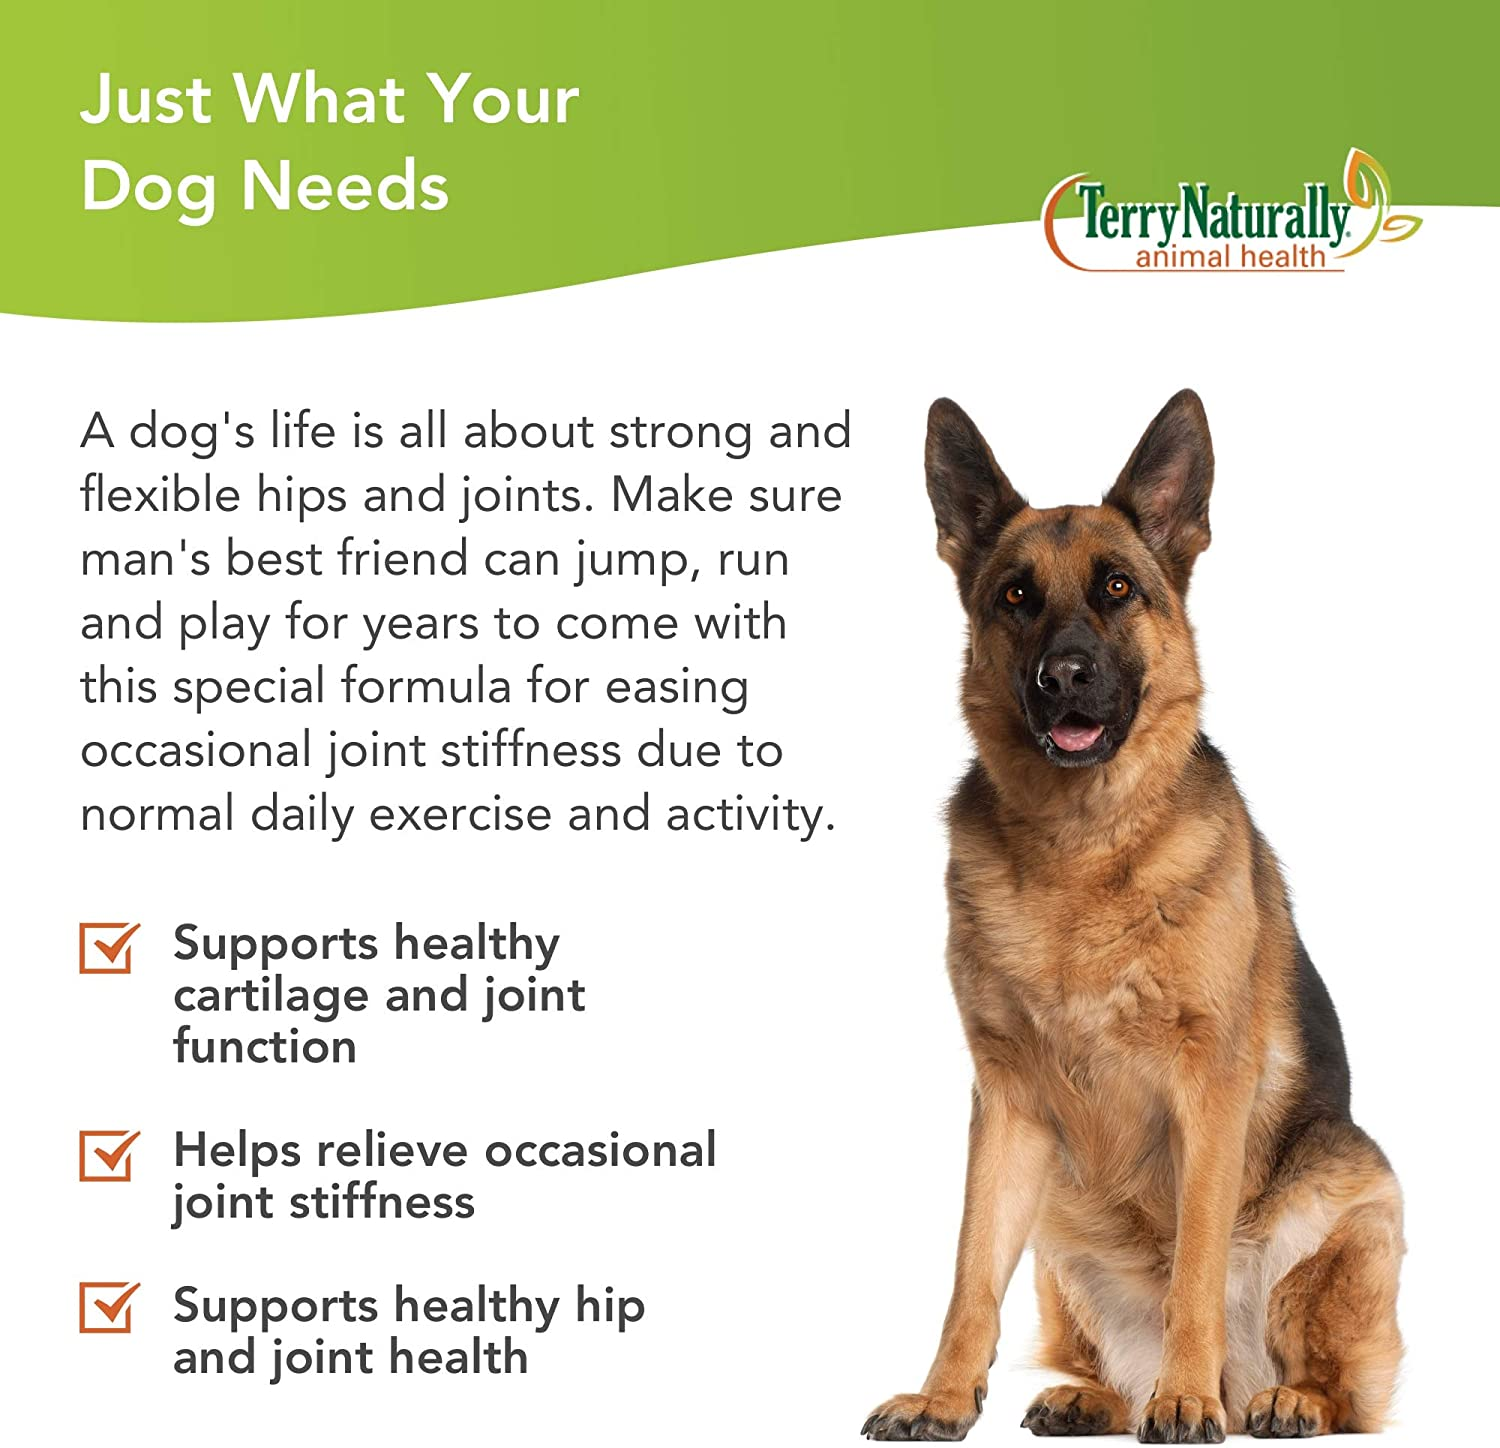 Terry Naturally Animal Health Joint & Hip Formula - 60 Chewable Wafers - Joint Health & Flexibility Support Supplement for Dogs, Promotes Comfort & Mobility - for Canines Only - 60 Servings